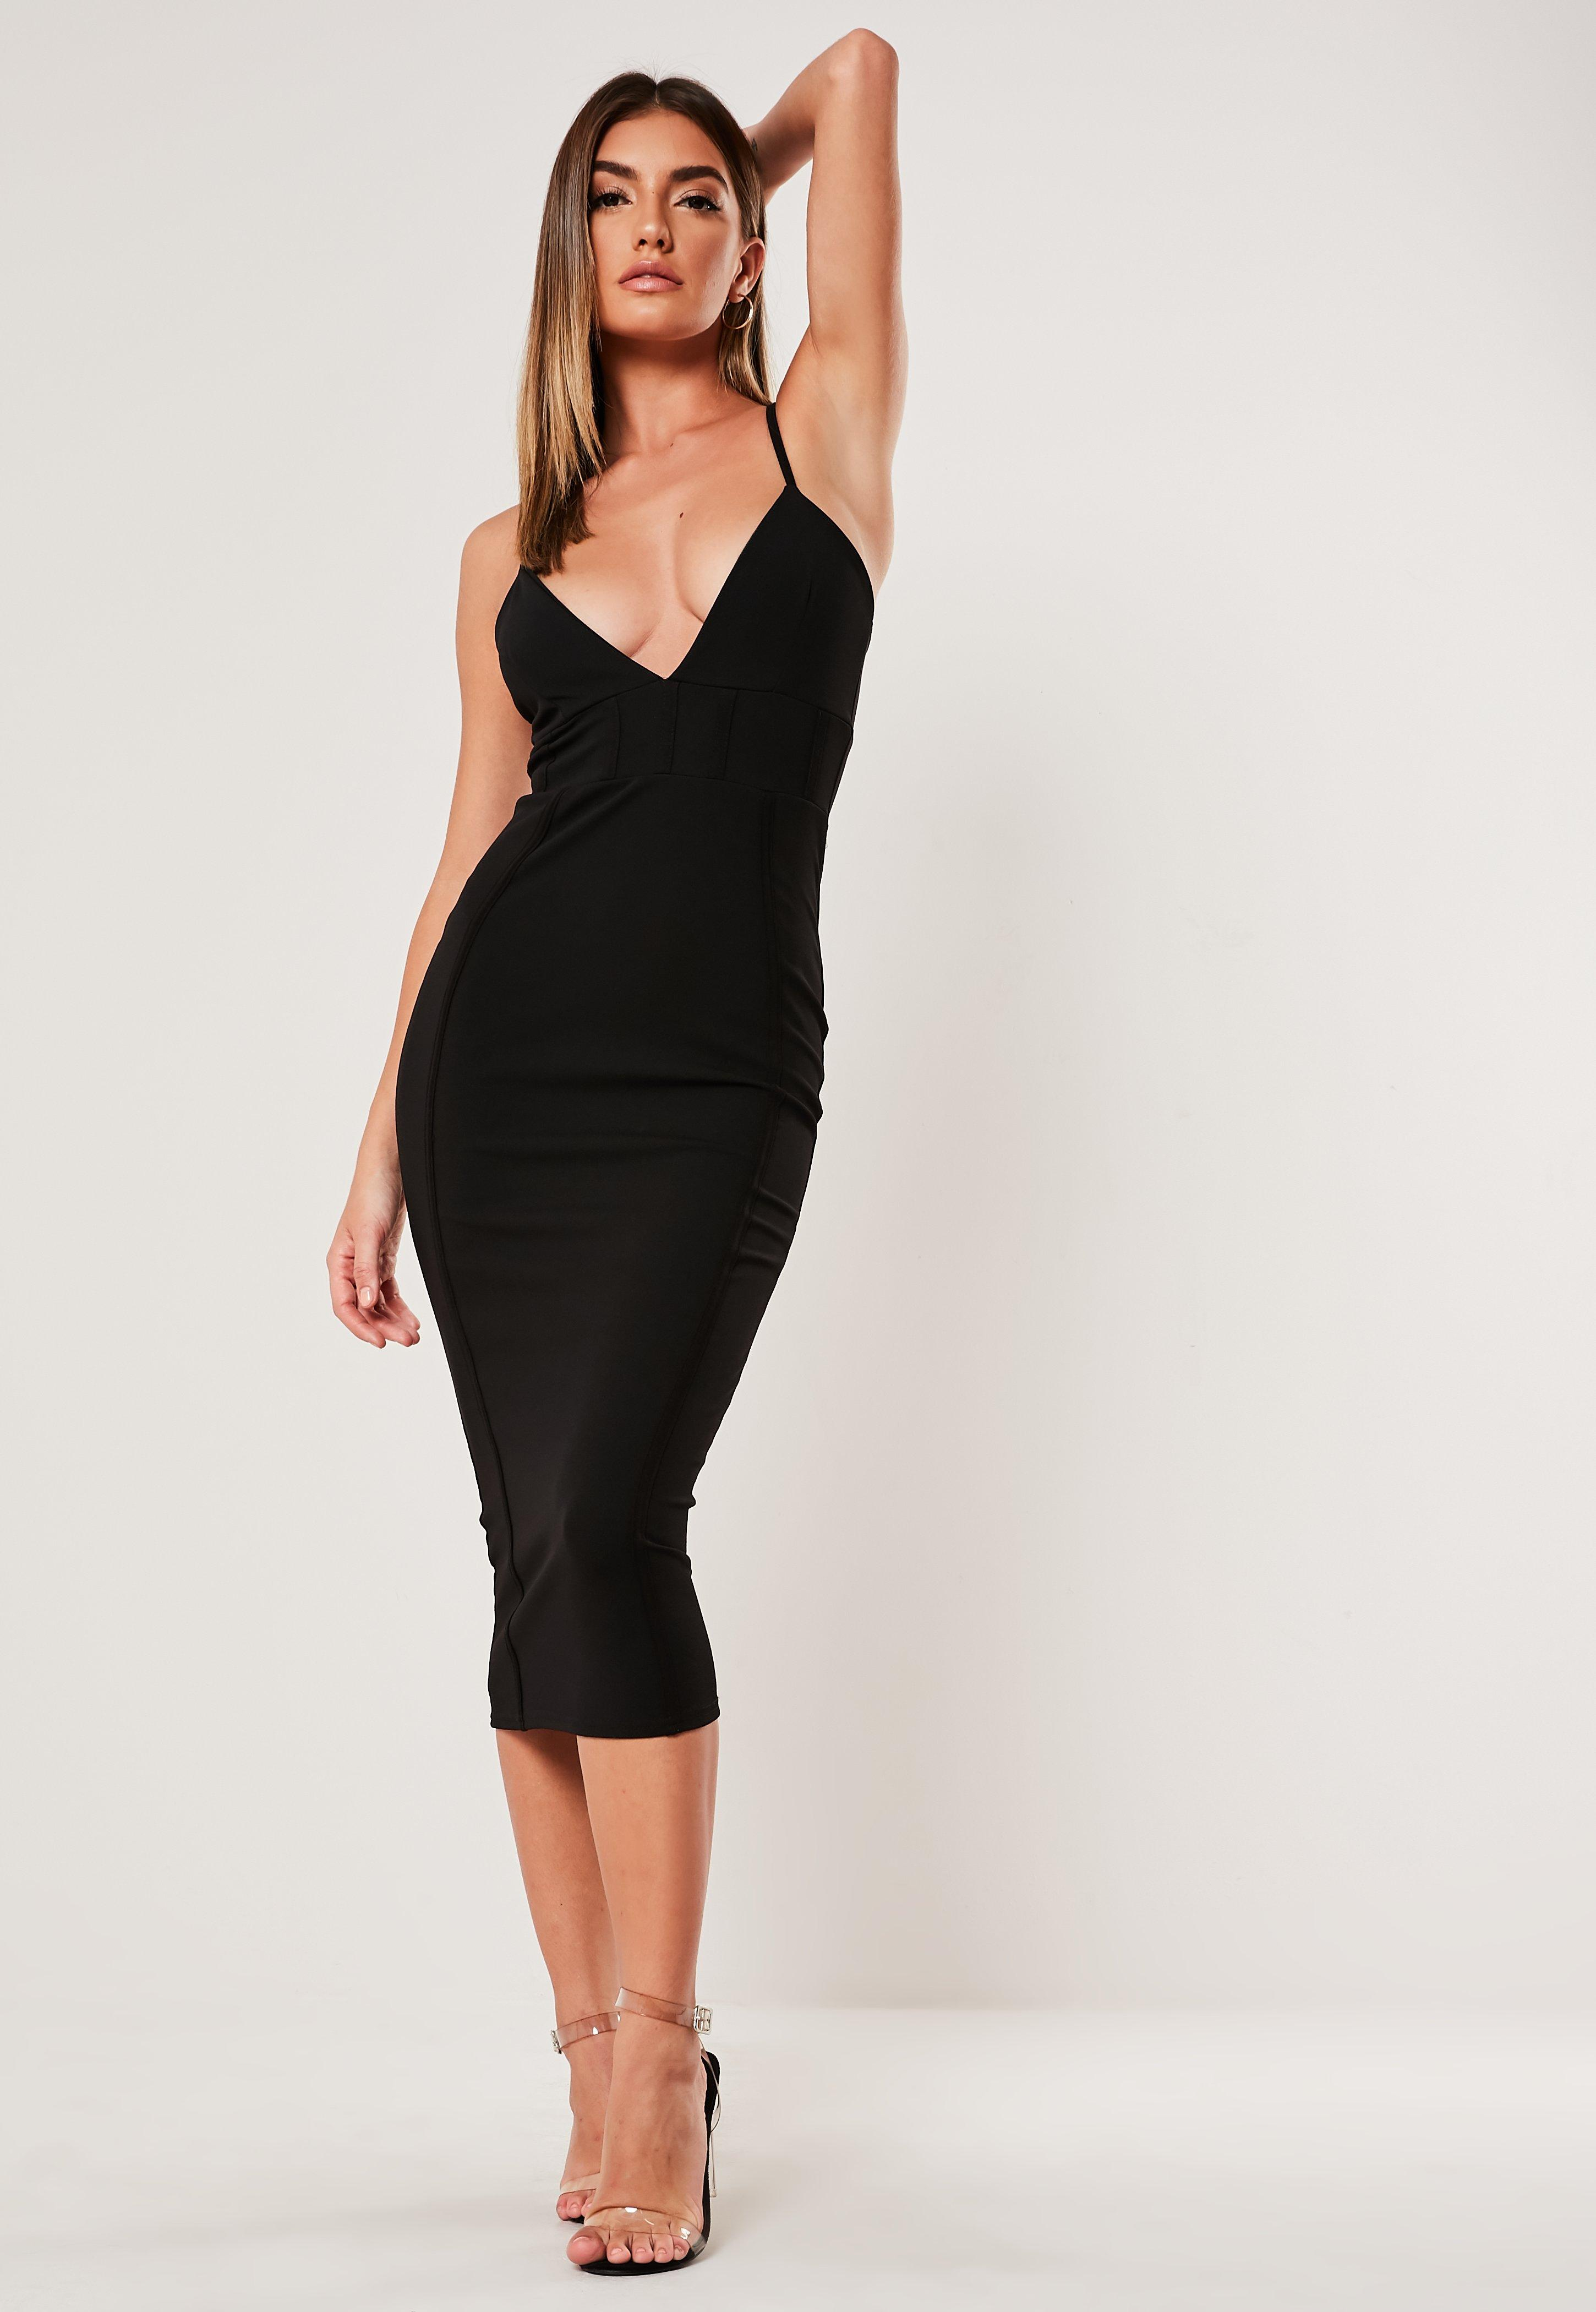 cf5f596b26c51 Party Dresses   Sexy Party Dress   Going Out Dresses   Missguided